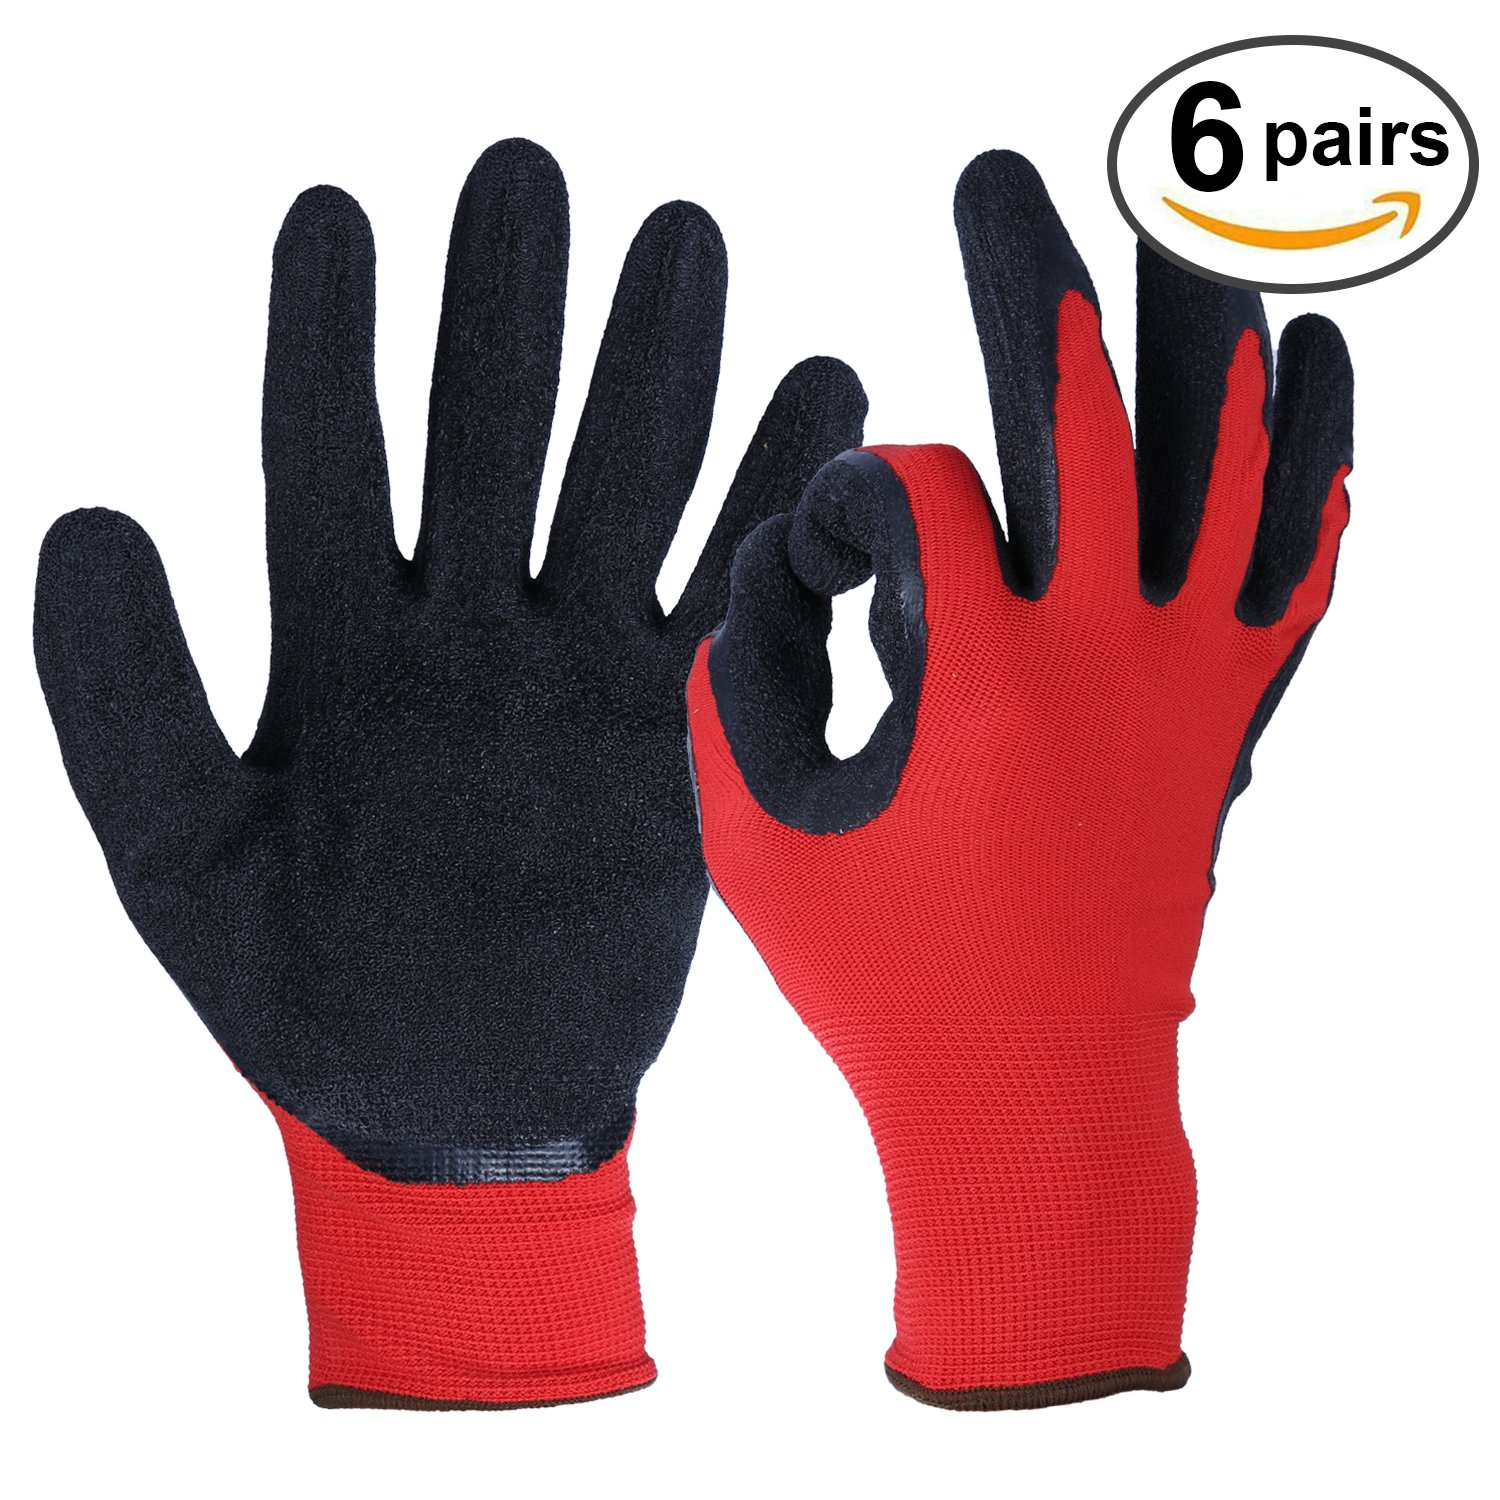 OZERO Working Gloves, Rubber Work Glove with Stretchy Nylon Shell for Fishing/Gardening/Yard/Farm/Household/Warehouse/Repairment - Ultimate Grip & Light Weight for Men & Women - 6 pairs Pack (Large)